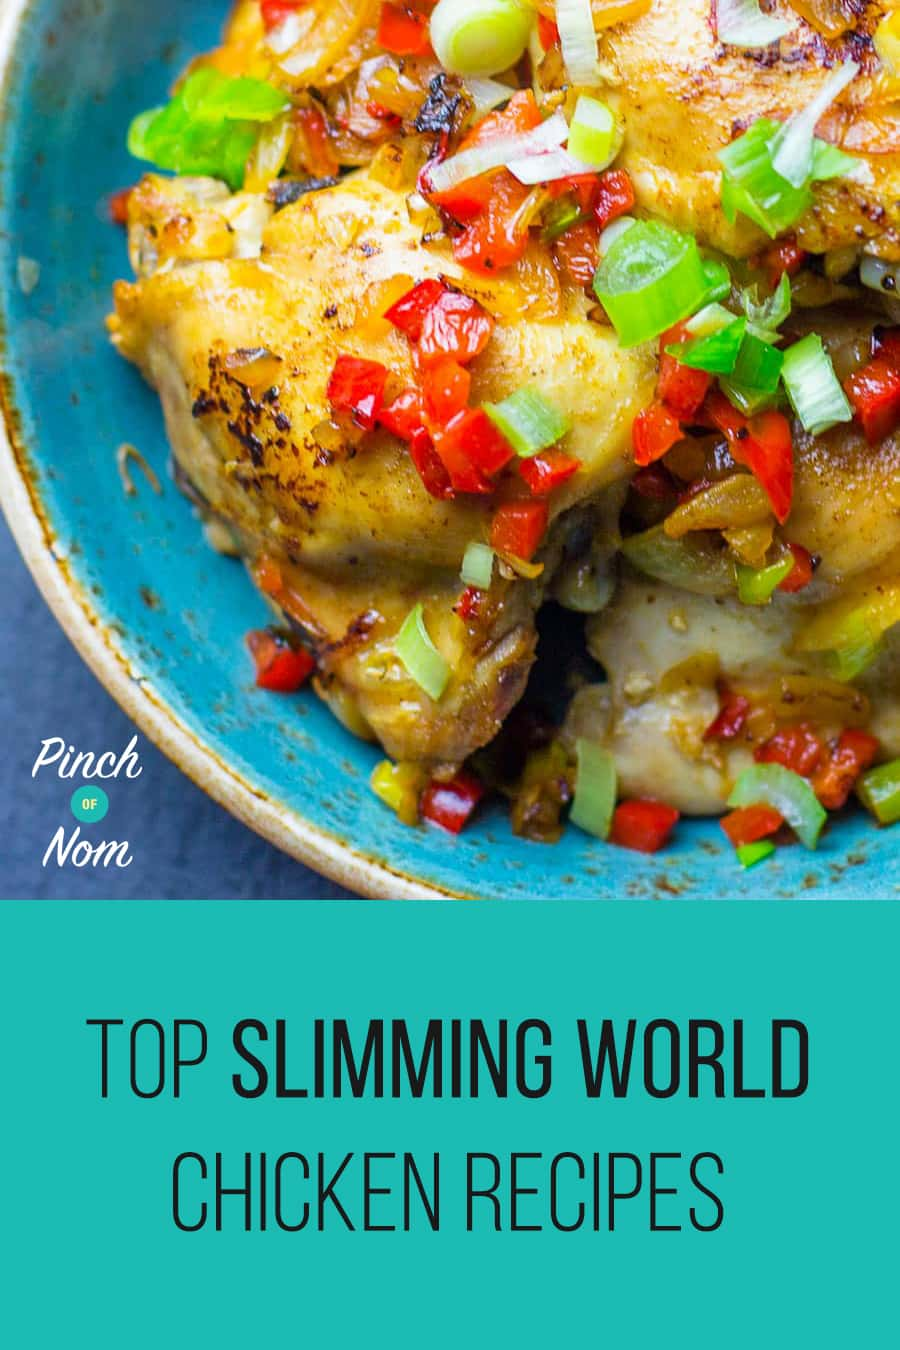 Top Slimming World Chicken Recipes